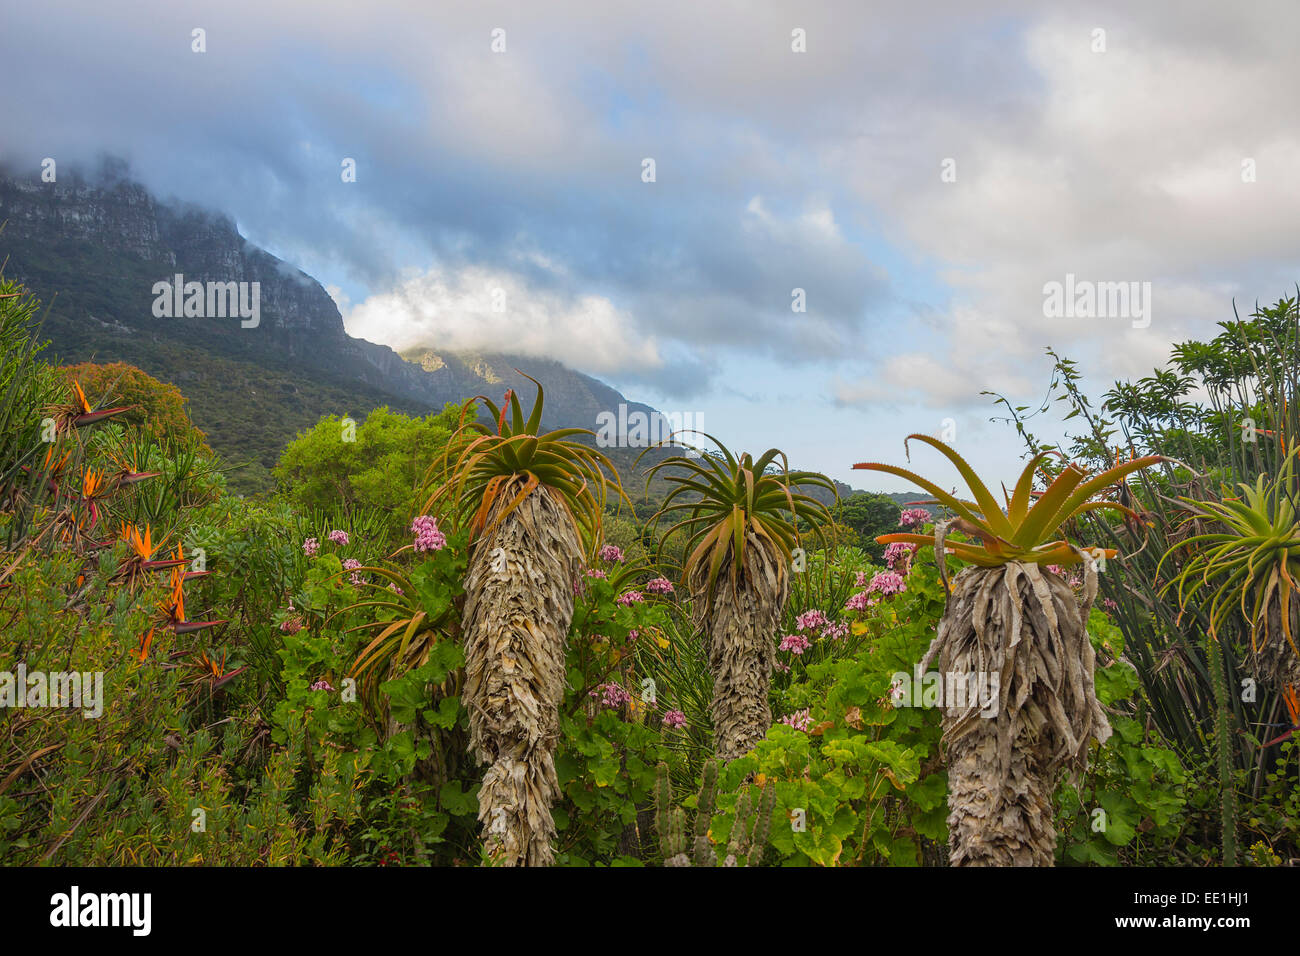 Kirstenbosch Gardens on a partly cloudy day with aloes in the foreground - Stock Image